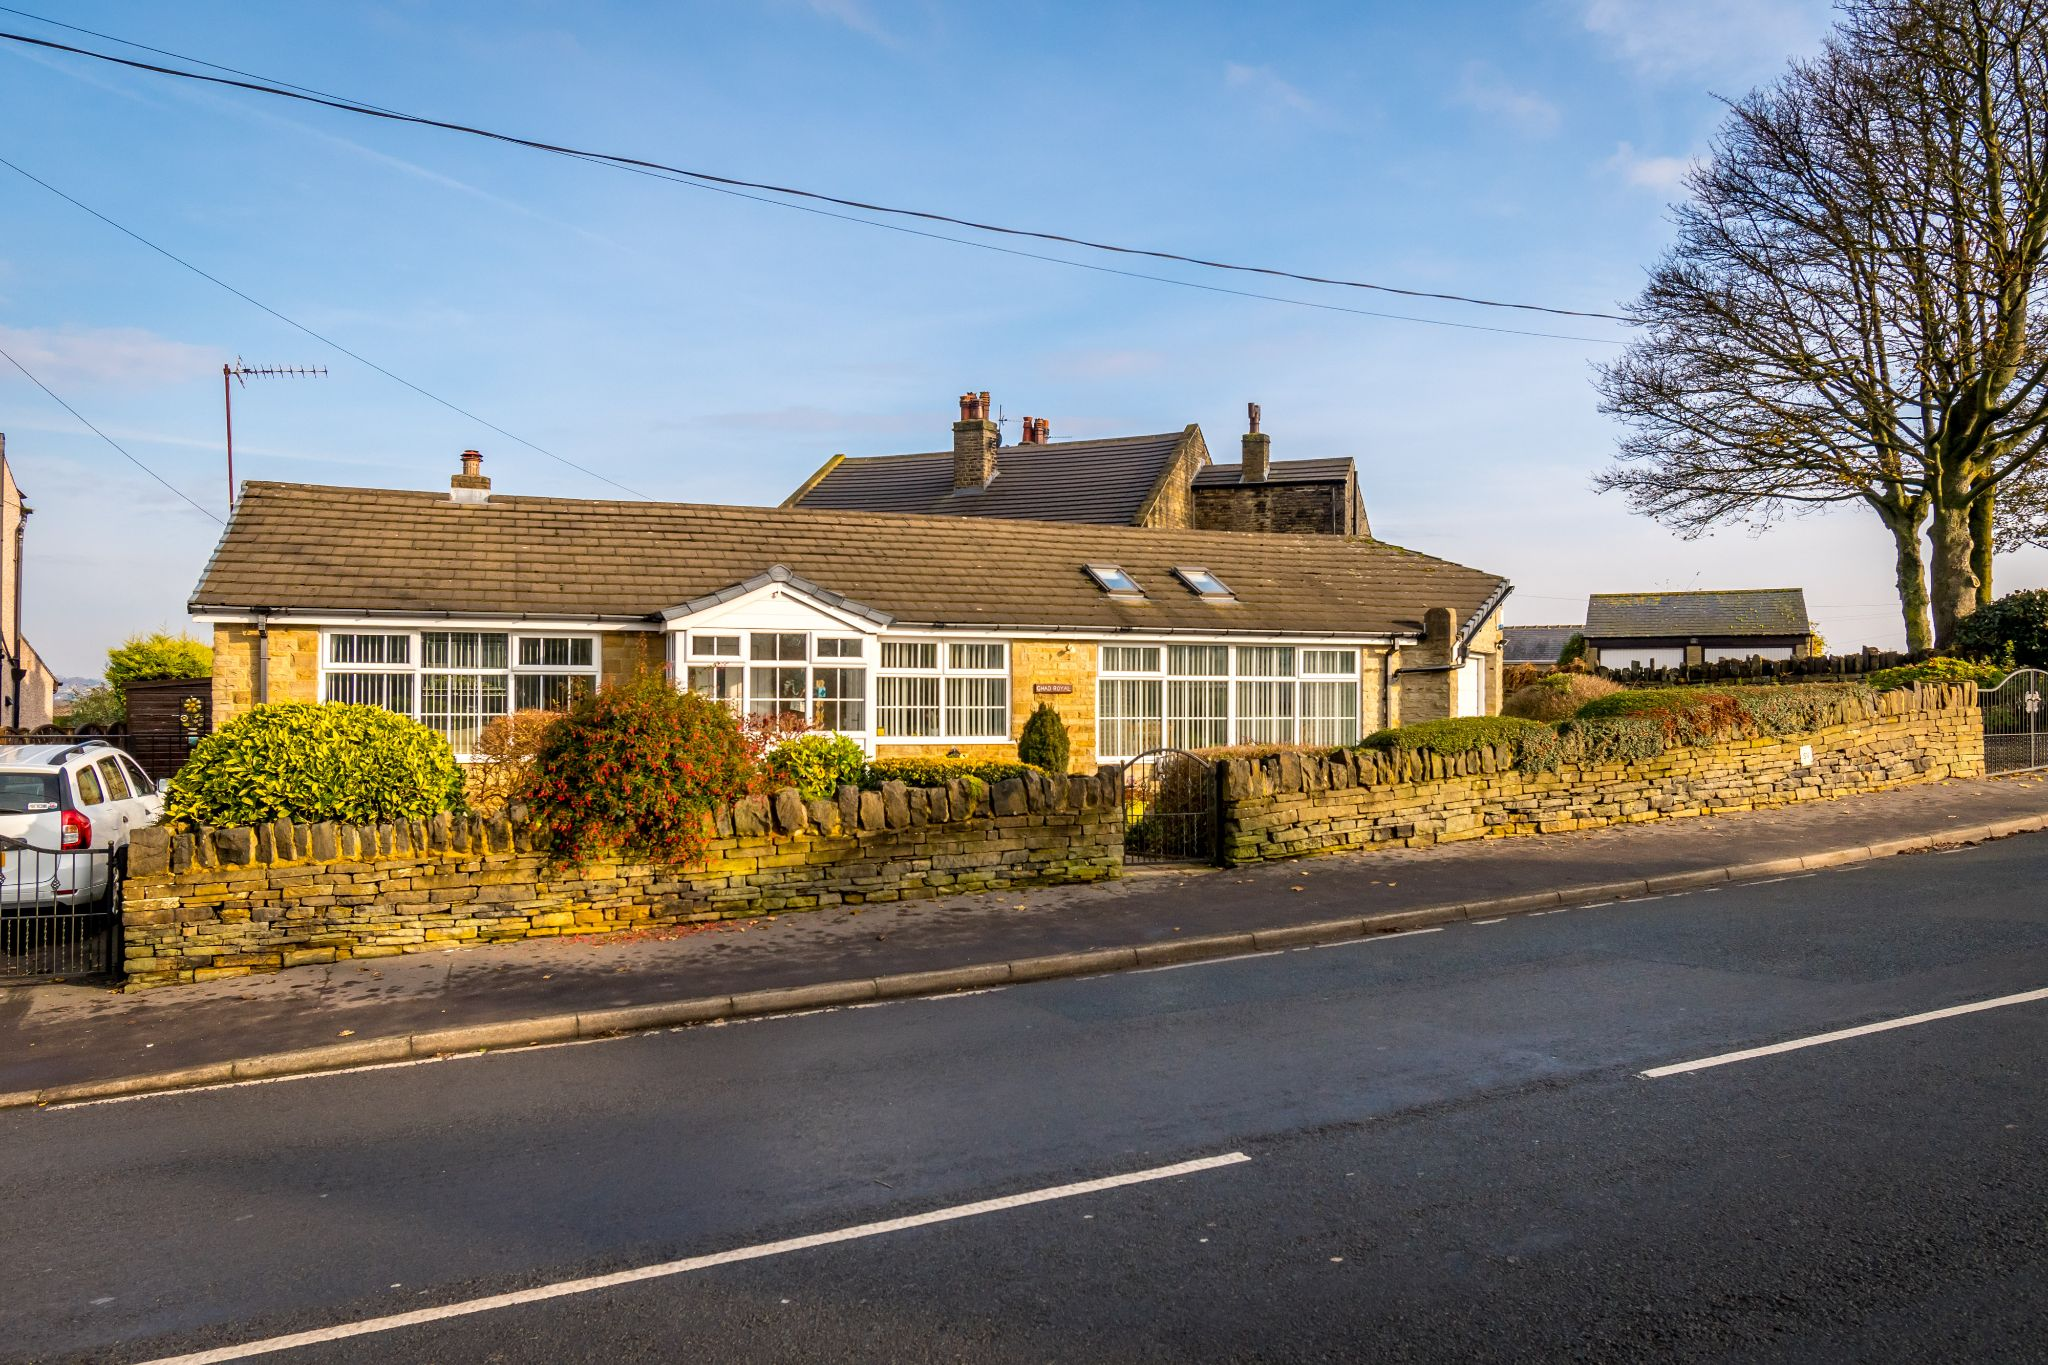 3 bedroom detached bungalow For Sale in Hove Edge - Front aspect